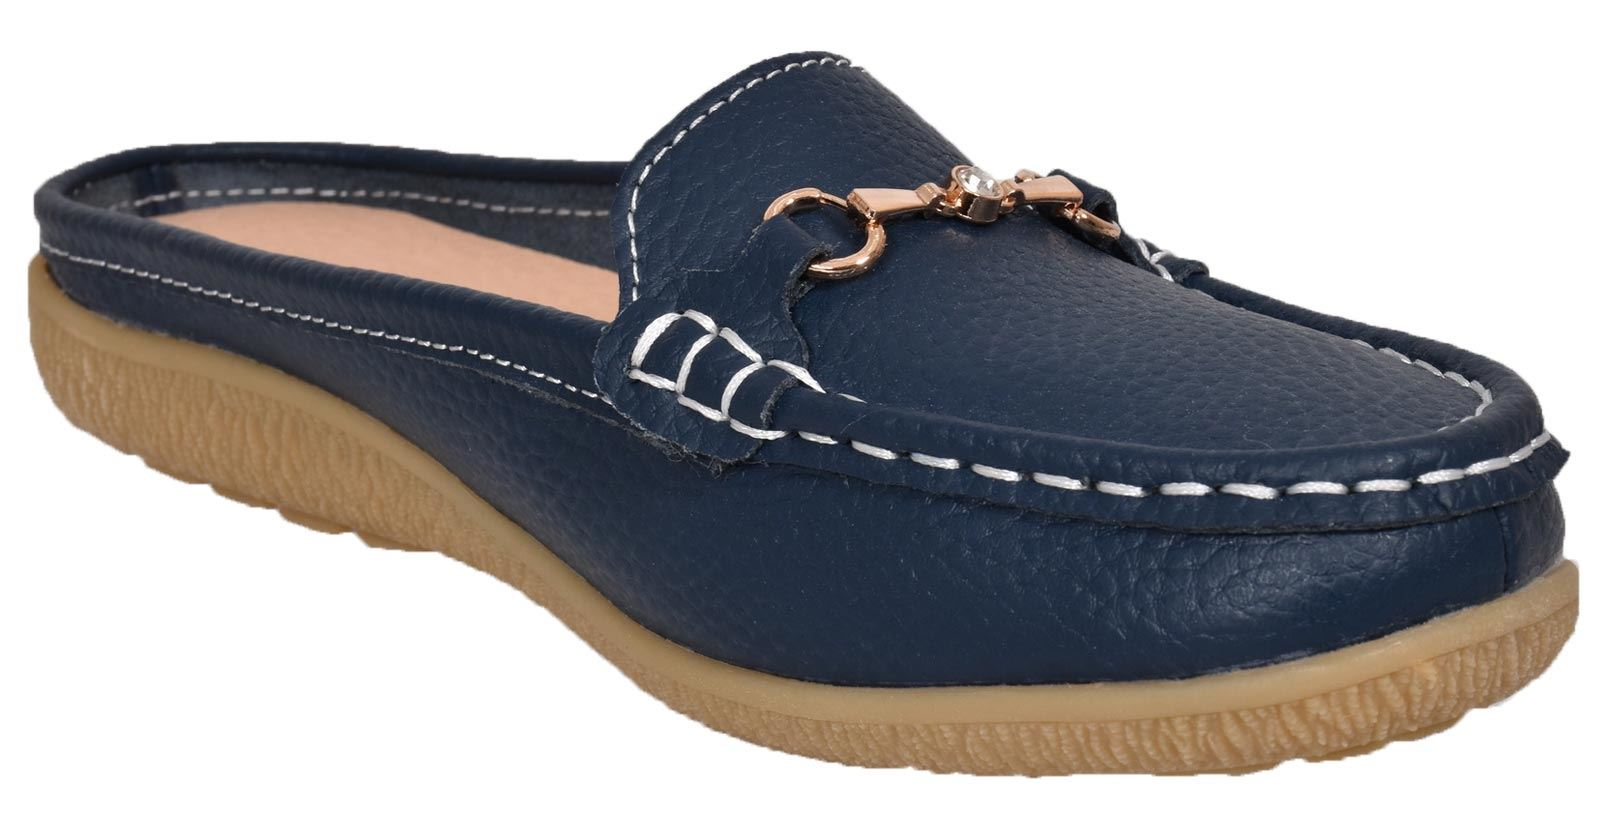 Ladies-Leather-Loafer-Mules-Comfort-Shoes-Womens-Slider-Moccasins-Shoes thumbnail 25